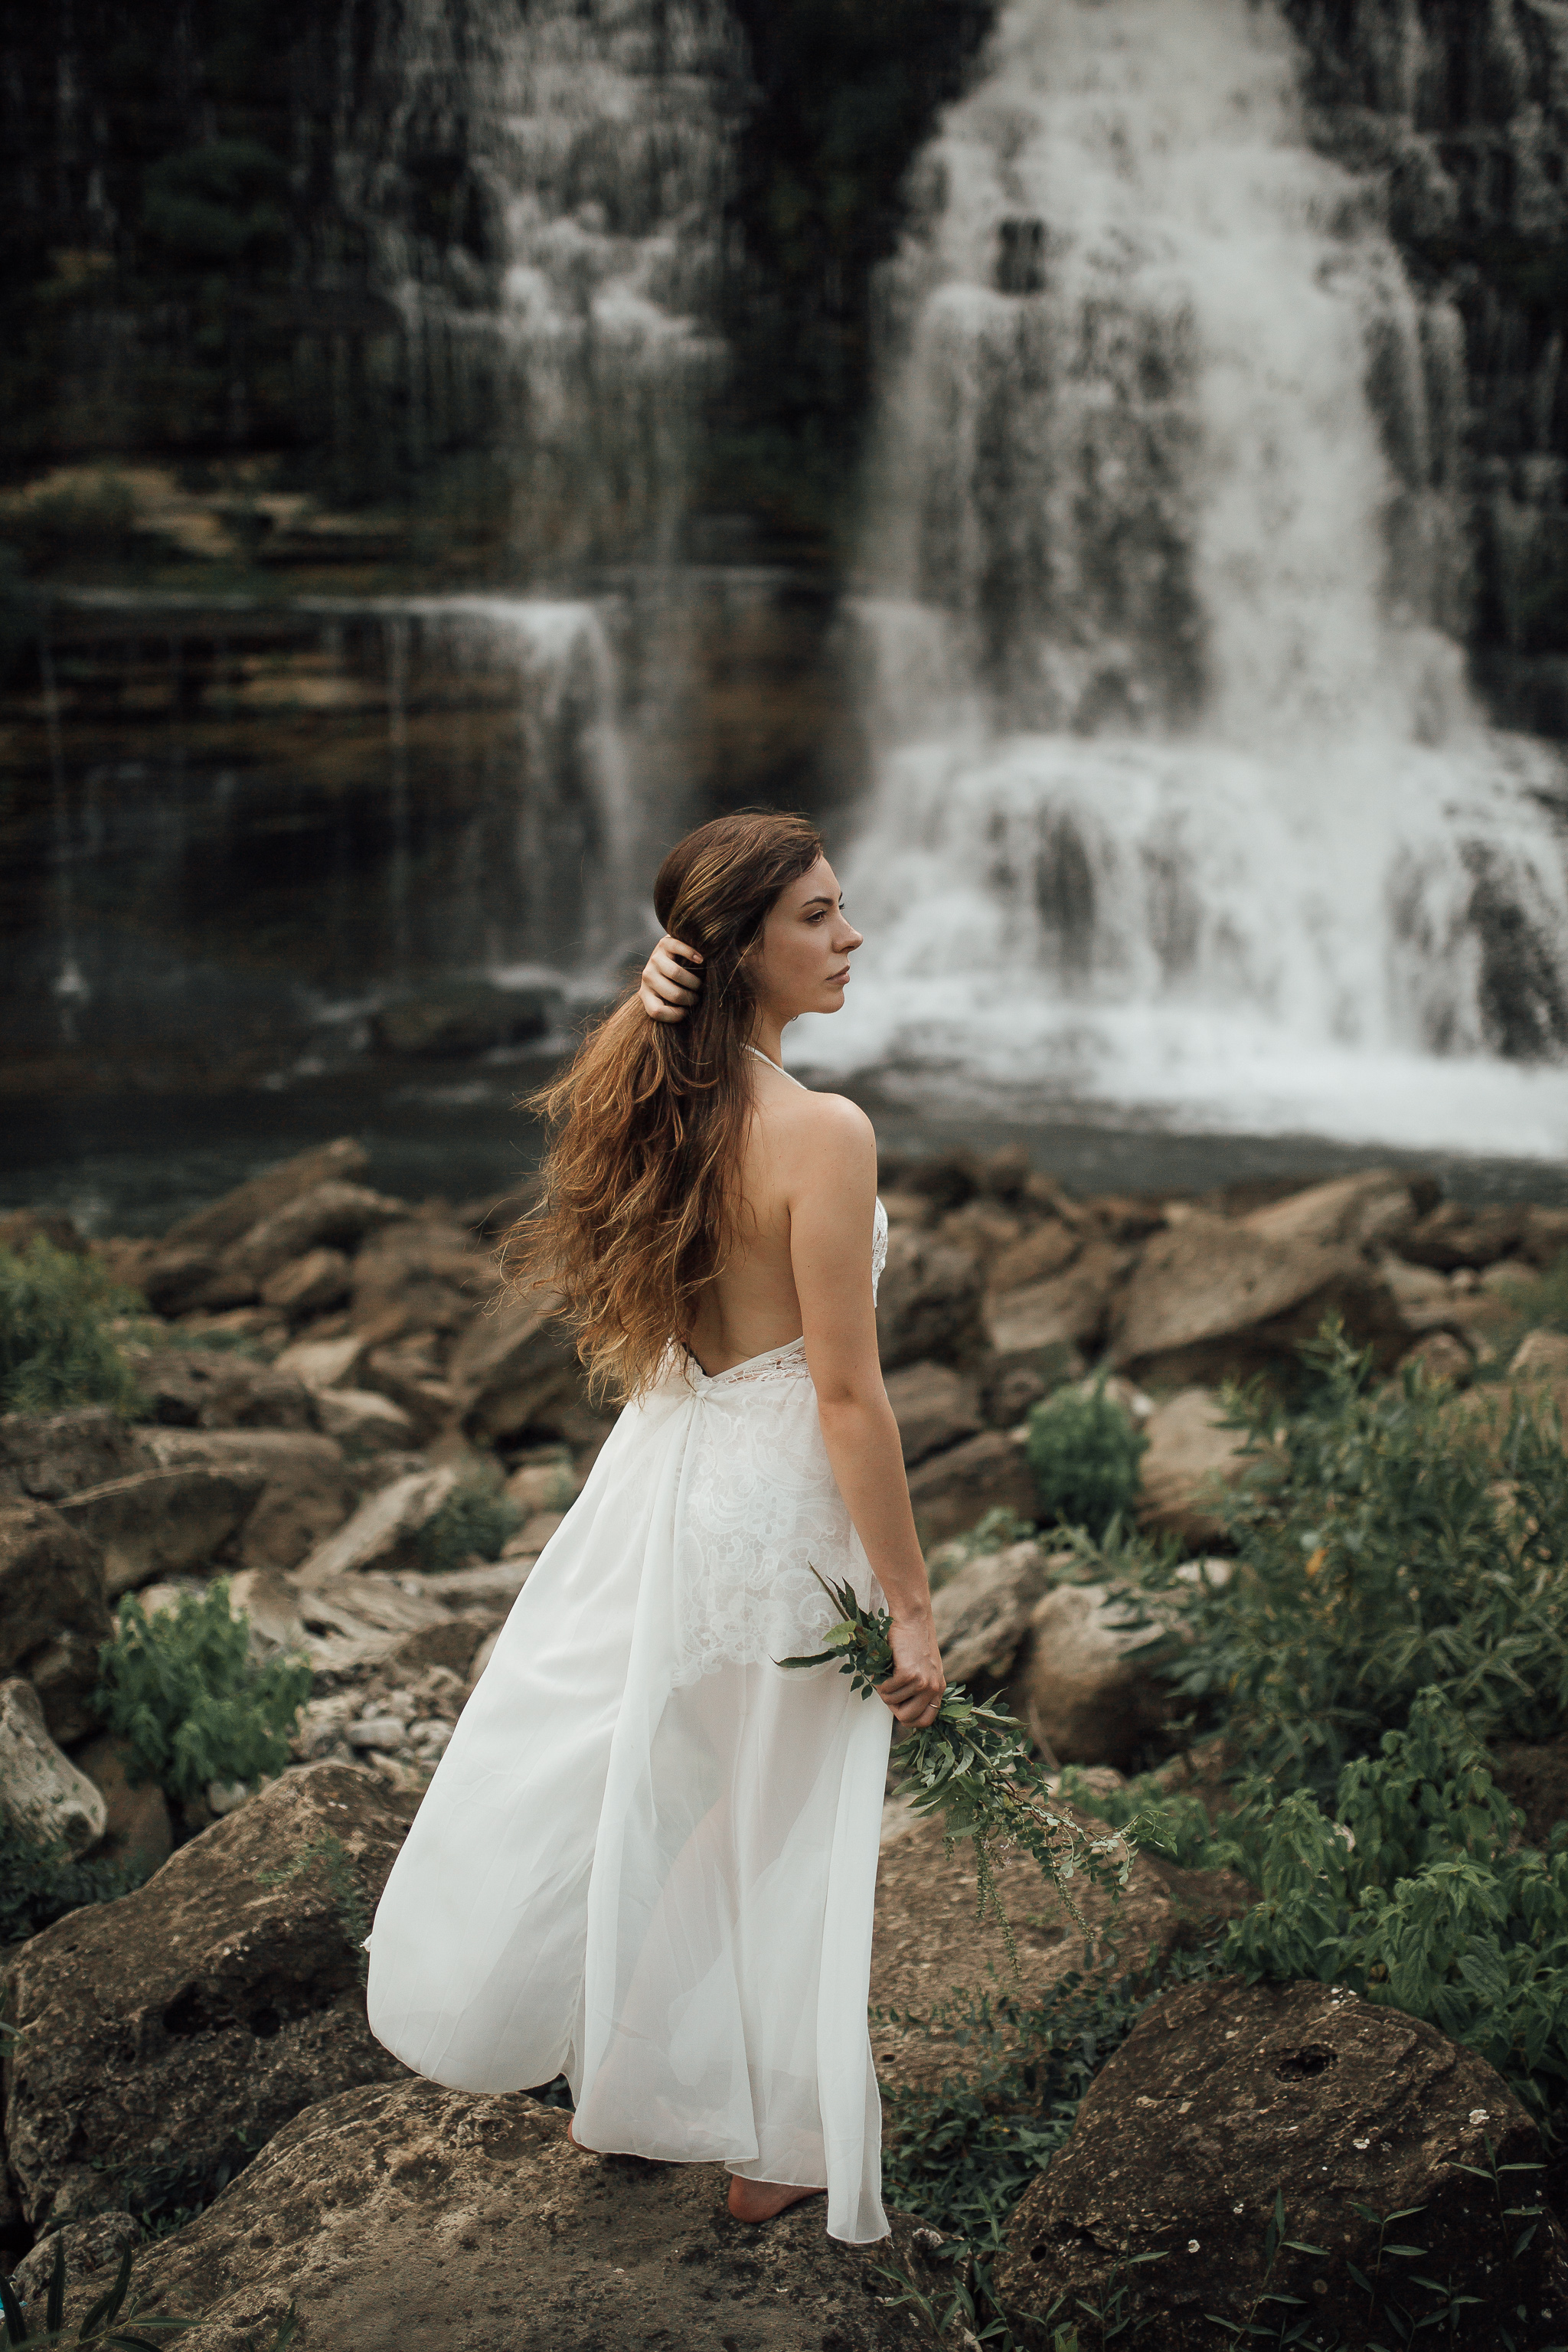 chattanooga-tennessee-wedding-photographer-cassie-cook-photography-bridal-inspiration